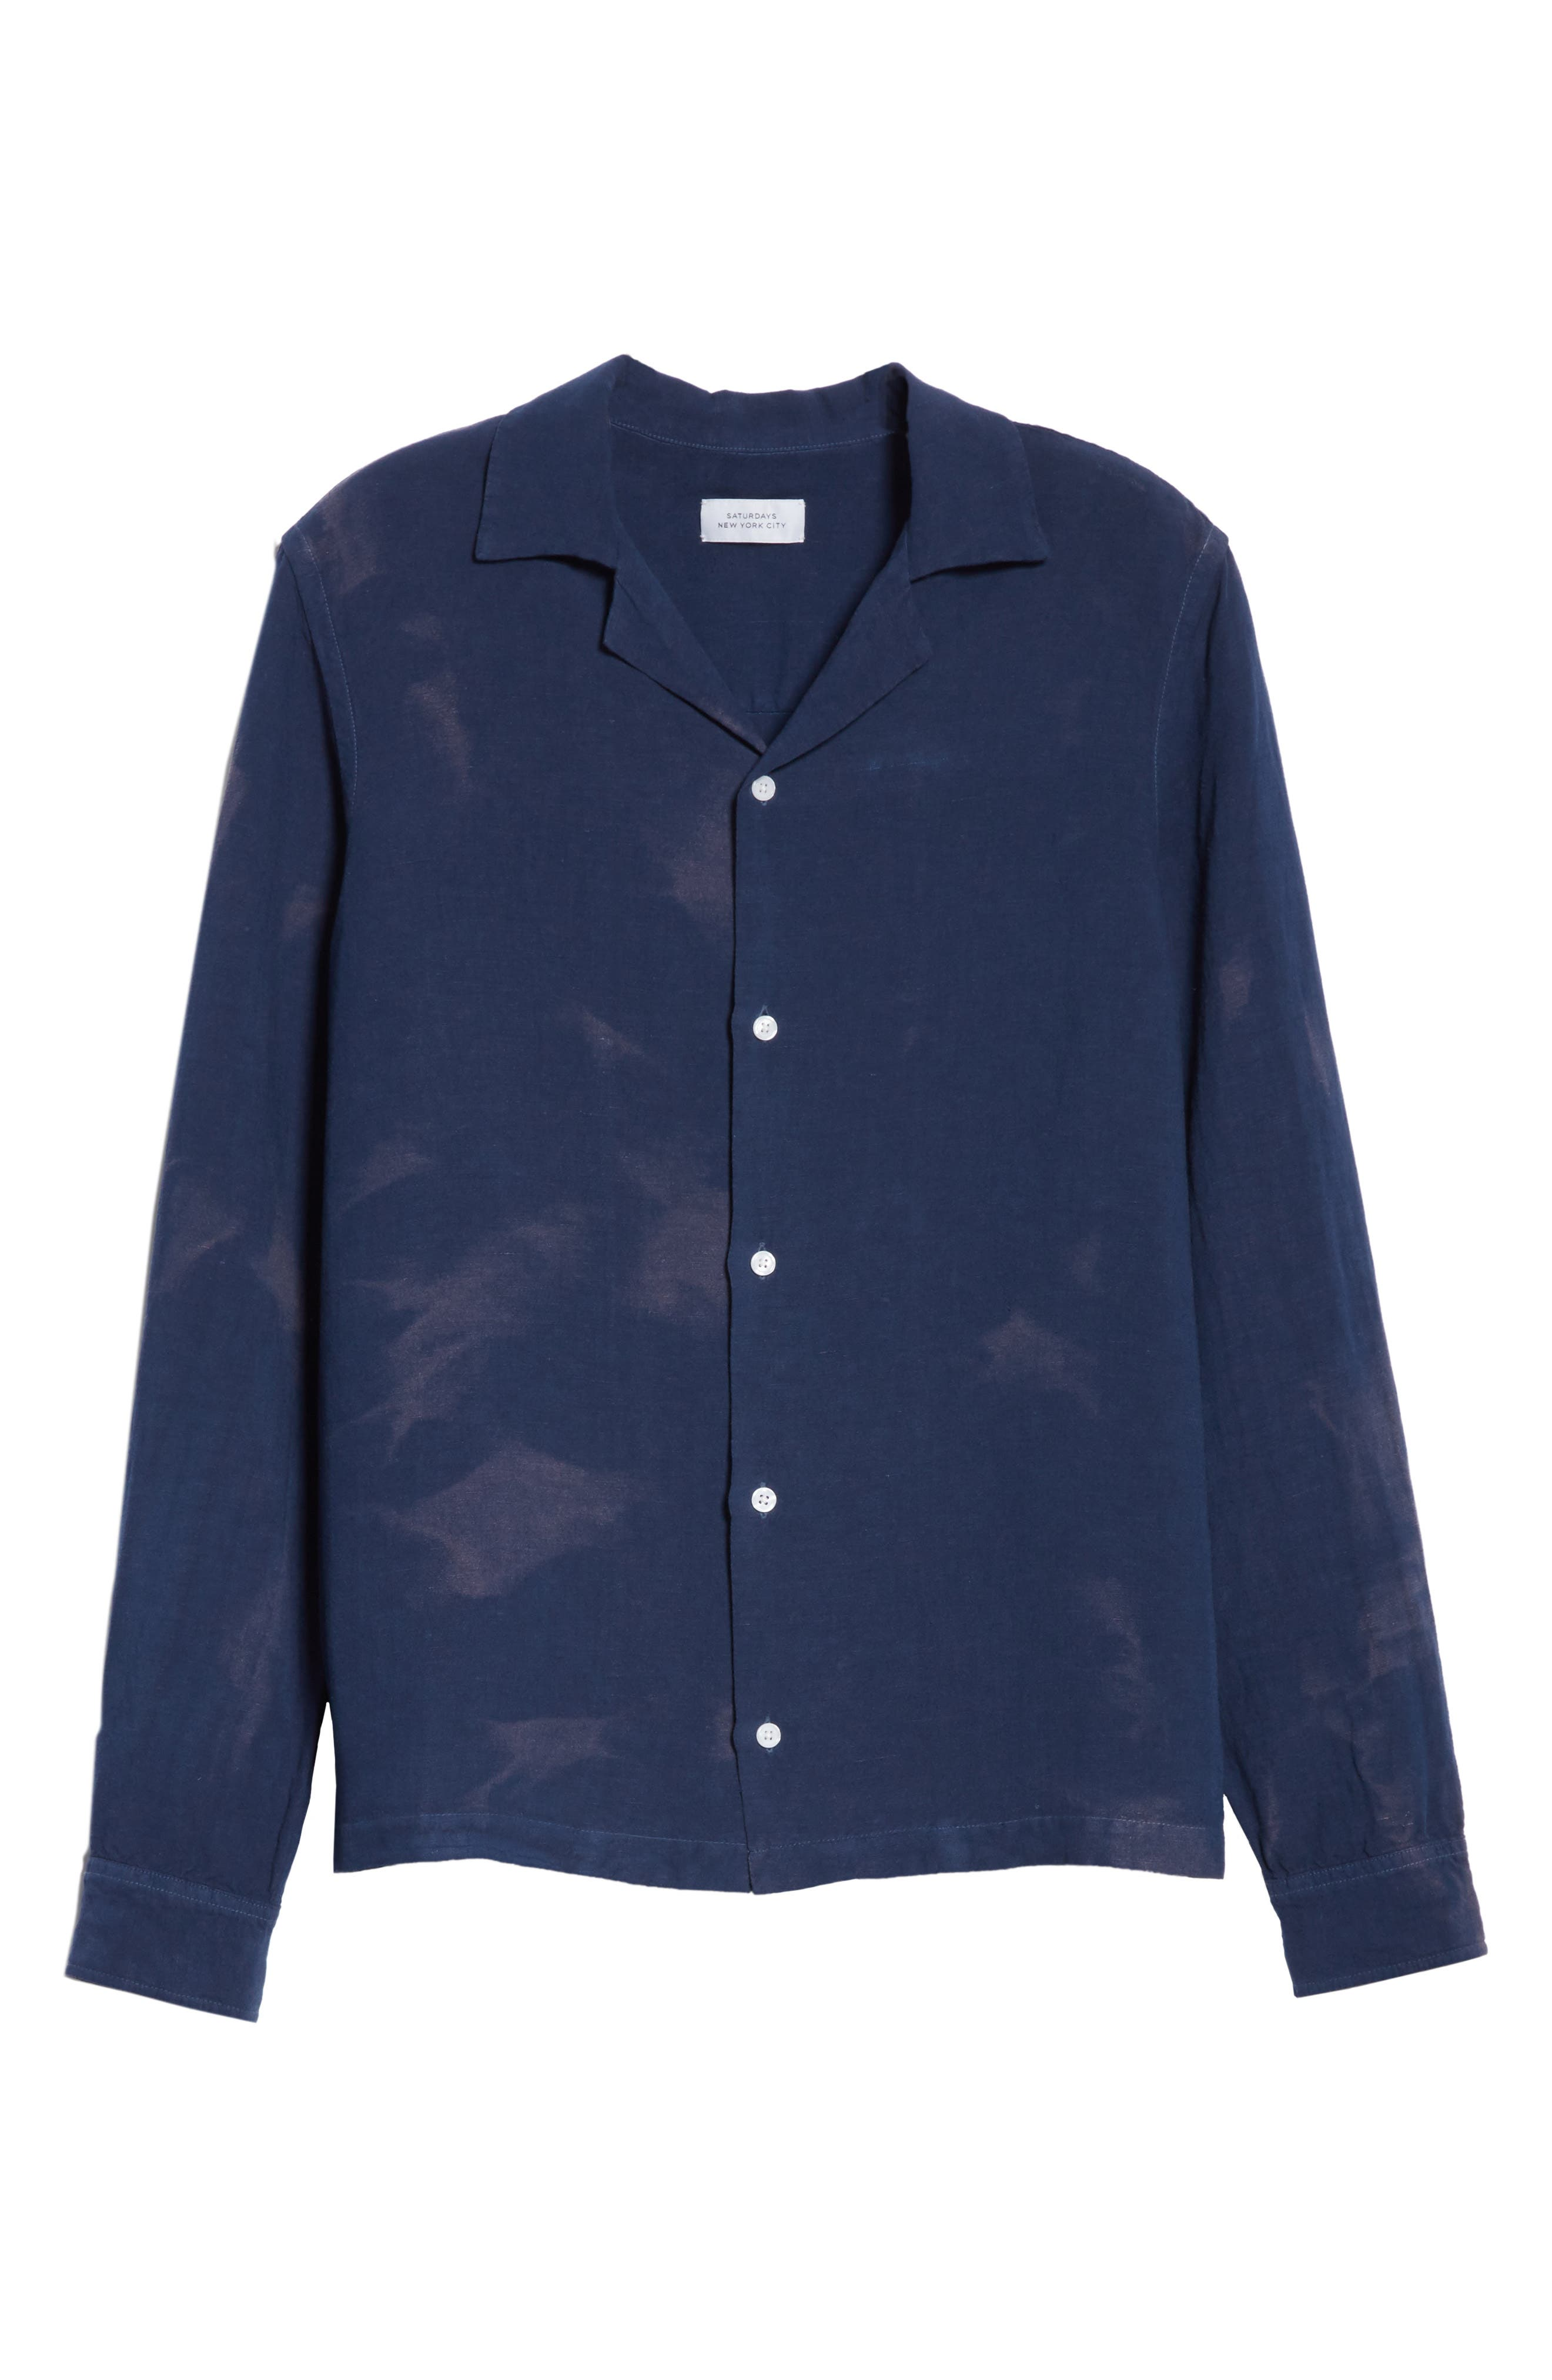 Canty Long Sleeve Camp Shirt,                             Alternate thumbnail 5, color,                             Midnight